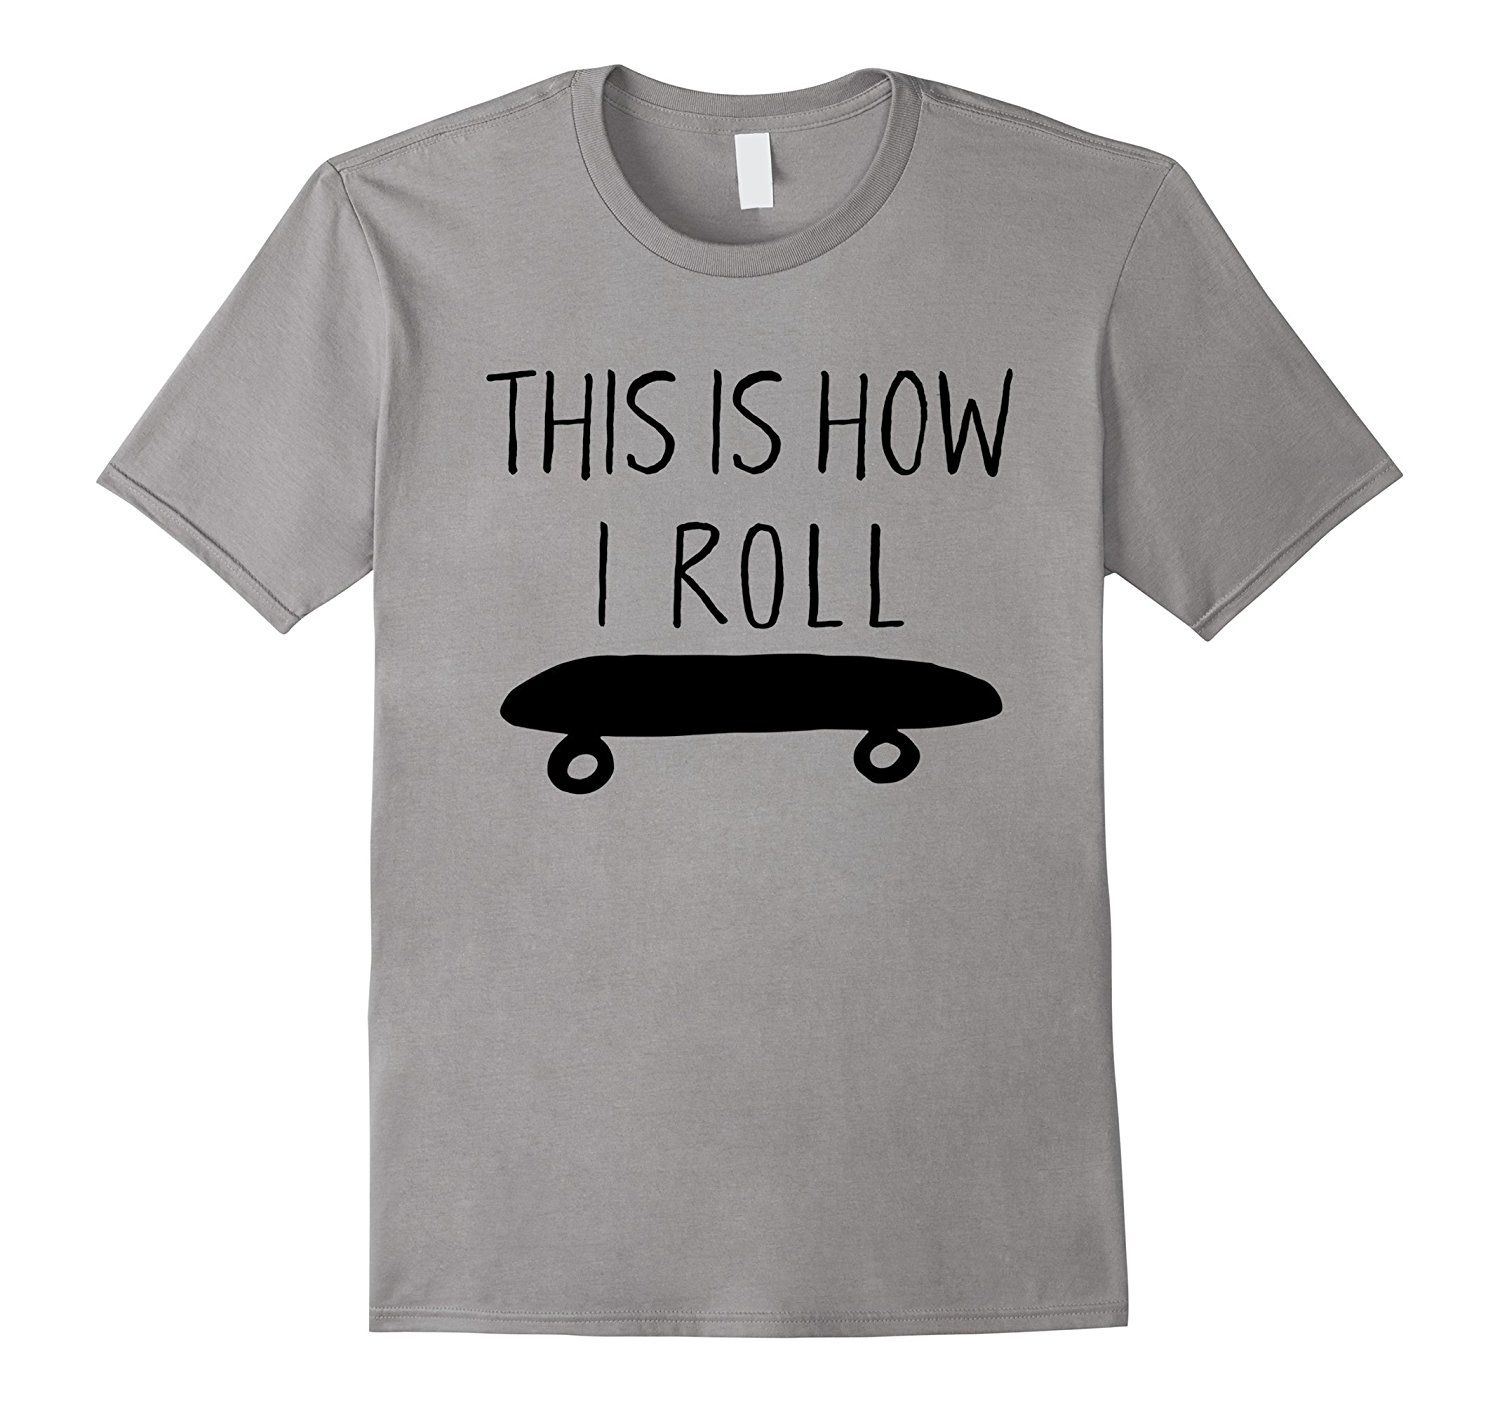 THIS IS HOW I ROLL Skateboard Shirt. Hipster Skate T-Shirt Short Sleeve Funny Design Top Tee Mens T Shirts 2017 Fashion